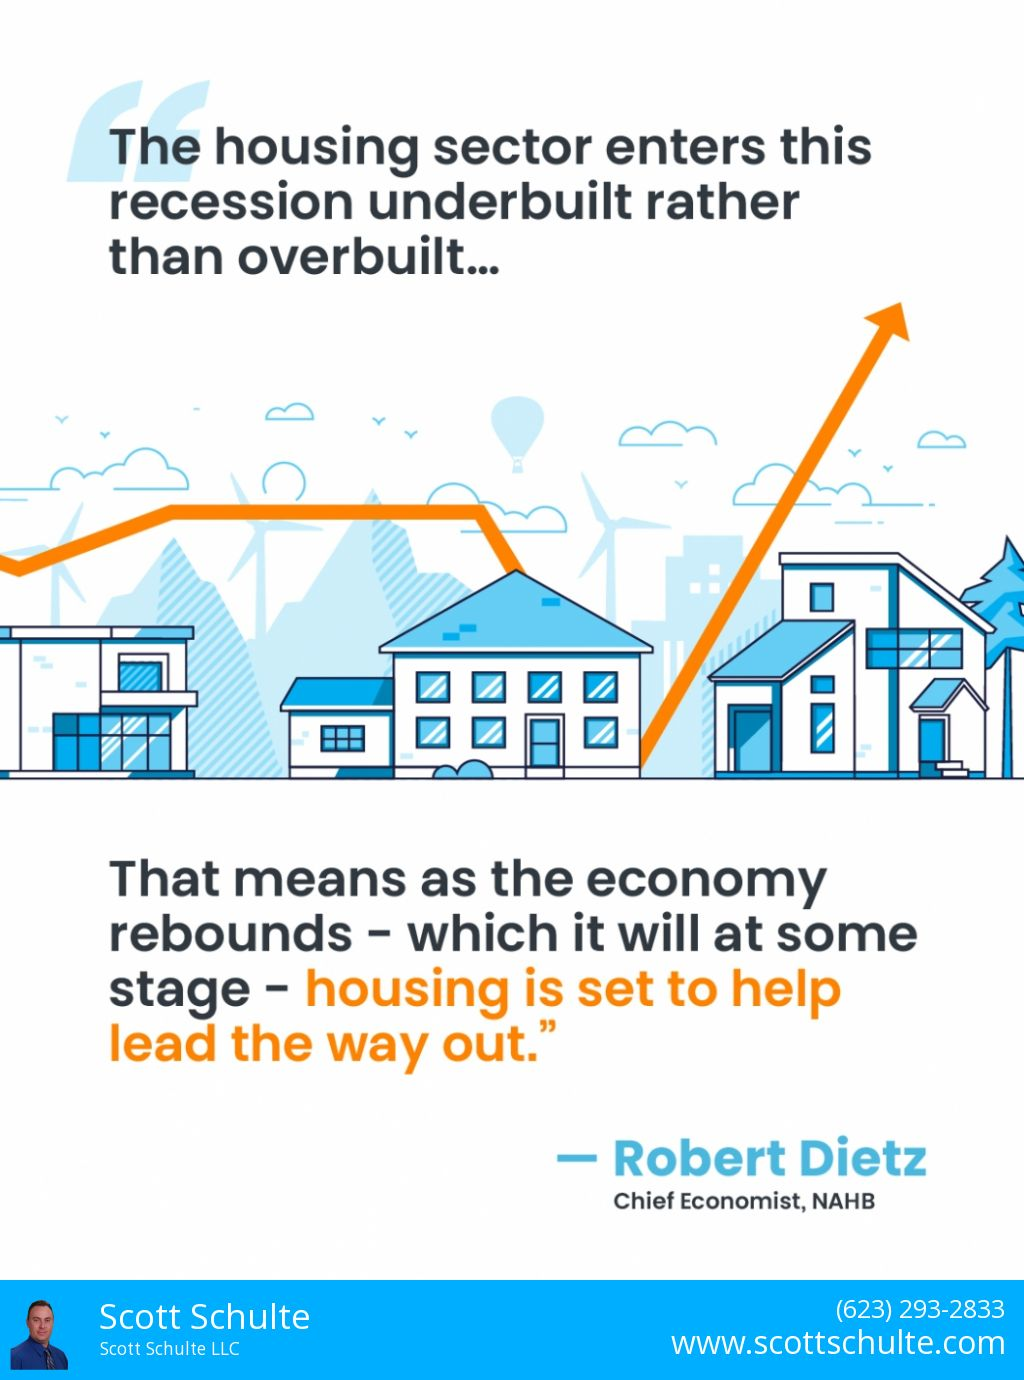 2020 recession Rebound chart and infographic